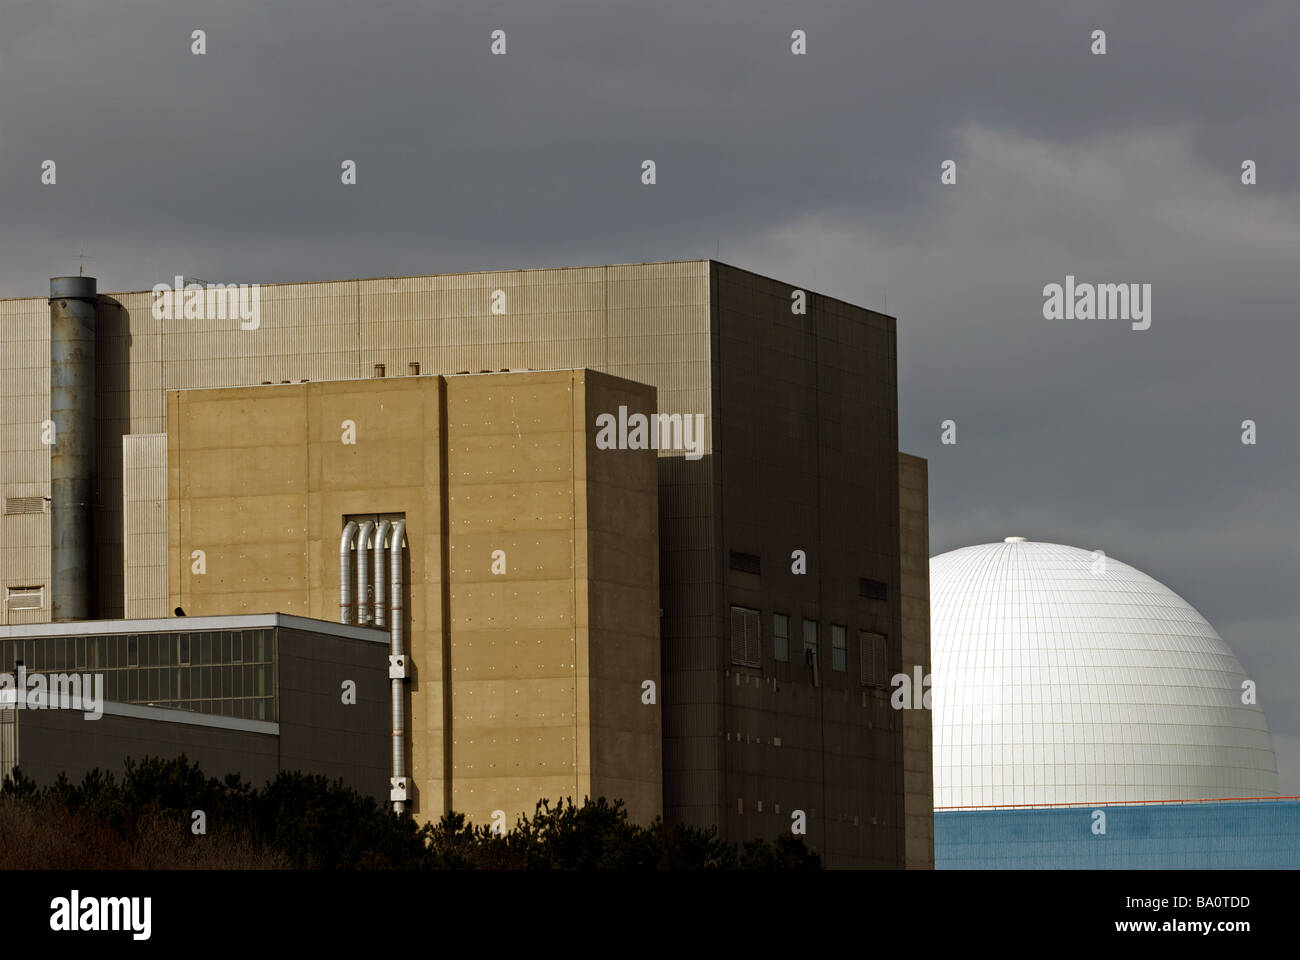 Sizewell A and B nuclear power stations, the A station was shut down in 2006 and is undergoing decommissioning. - Stock Image